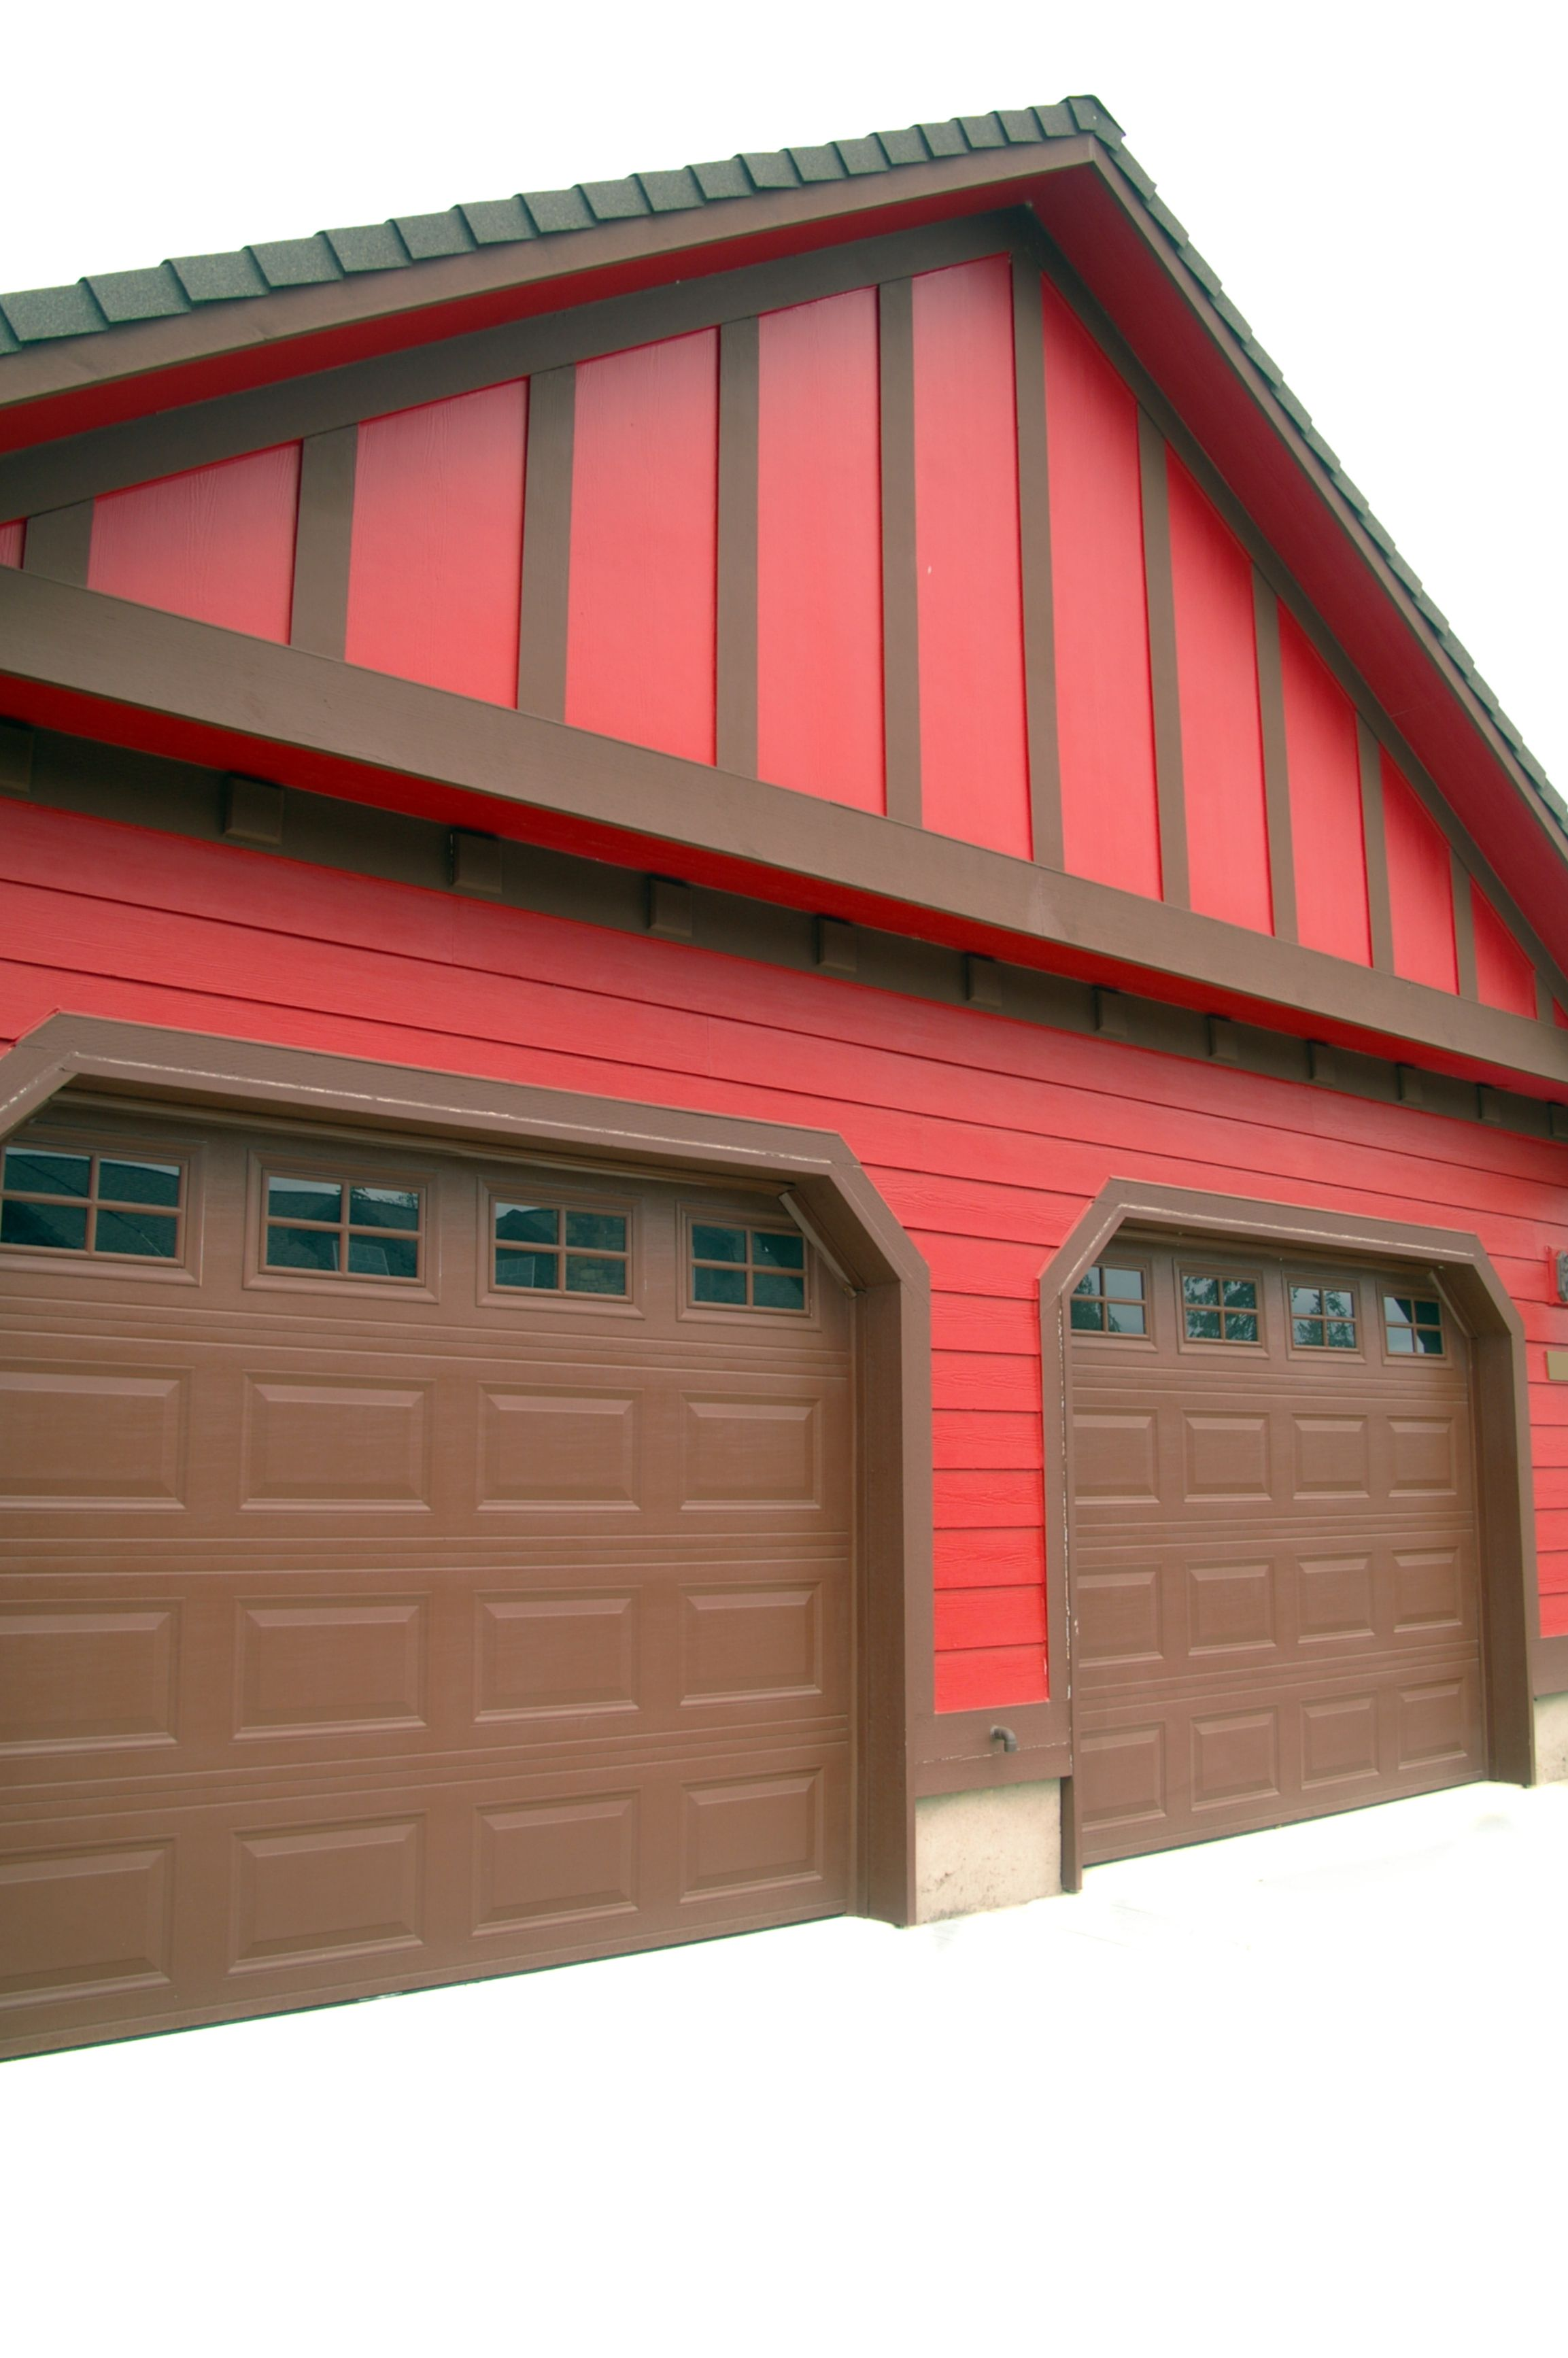 buy your opener discount for garage up using understated good benefits gallery springtime to of spruce plan place basic best door